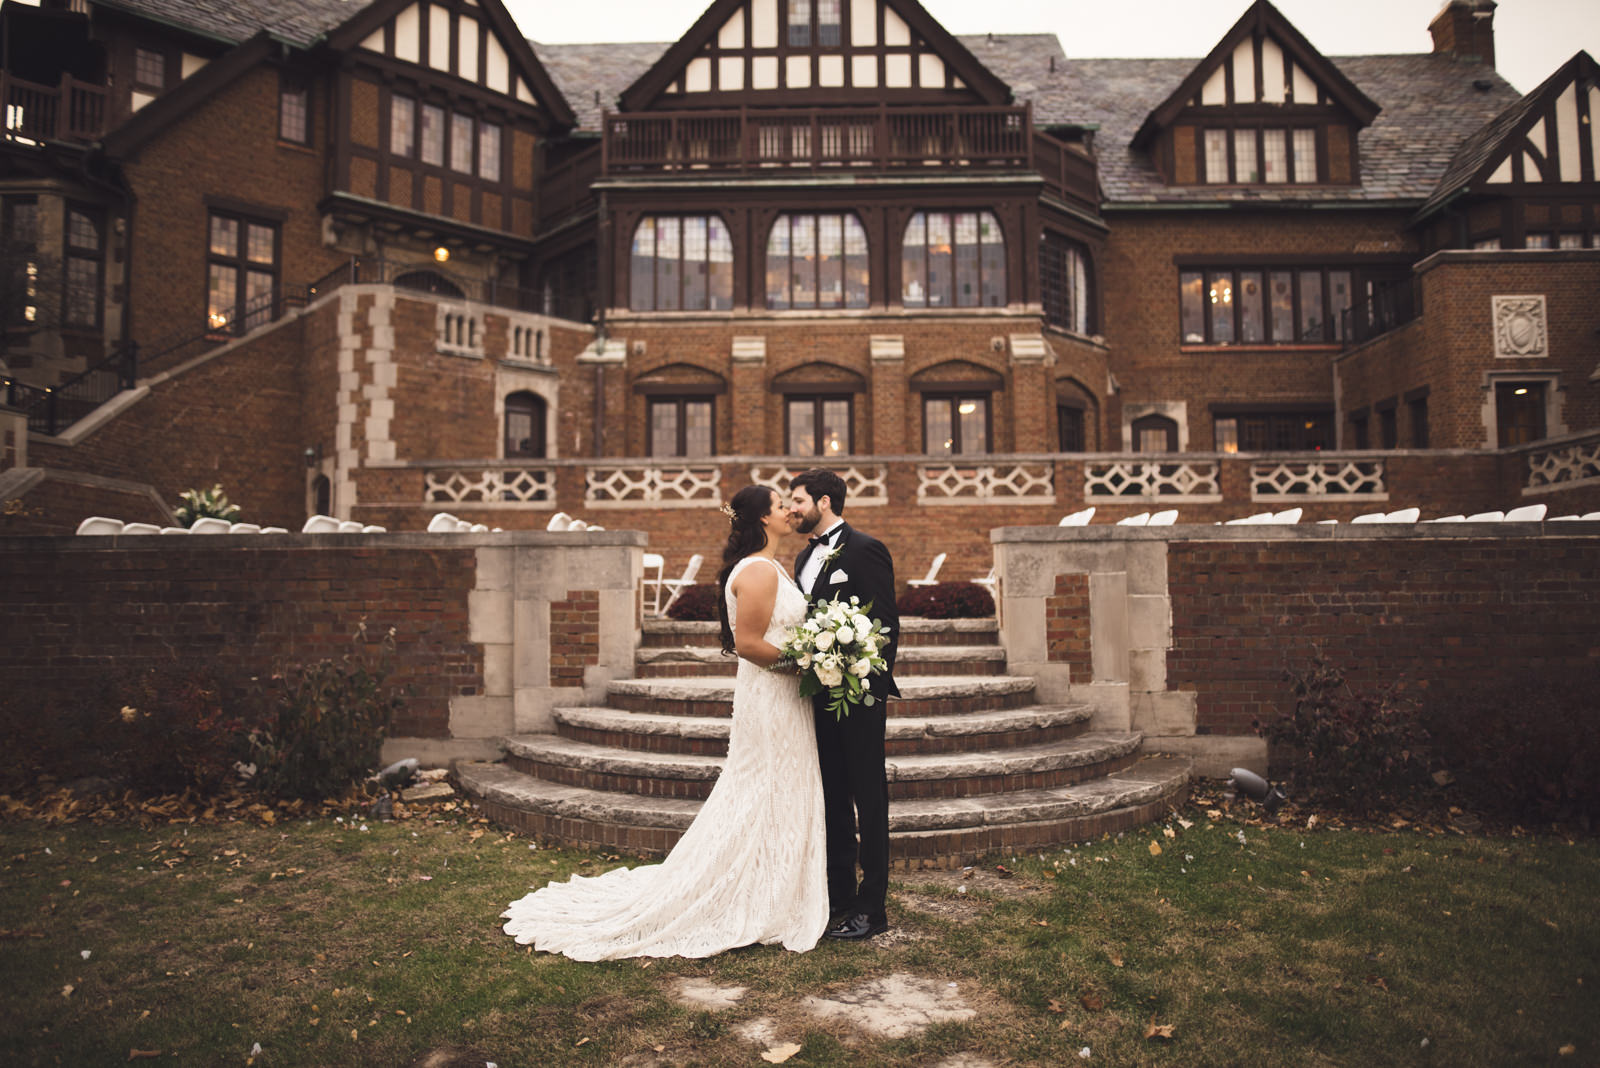 rollins-mansion-3116-wedding-photographer-des-moines-iowa-m-c.jpg